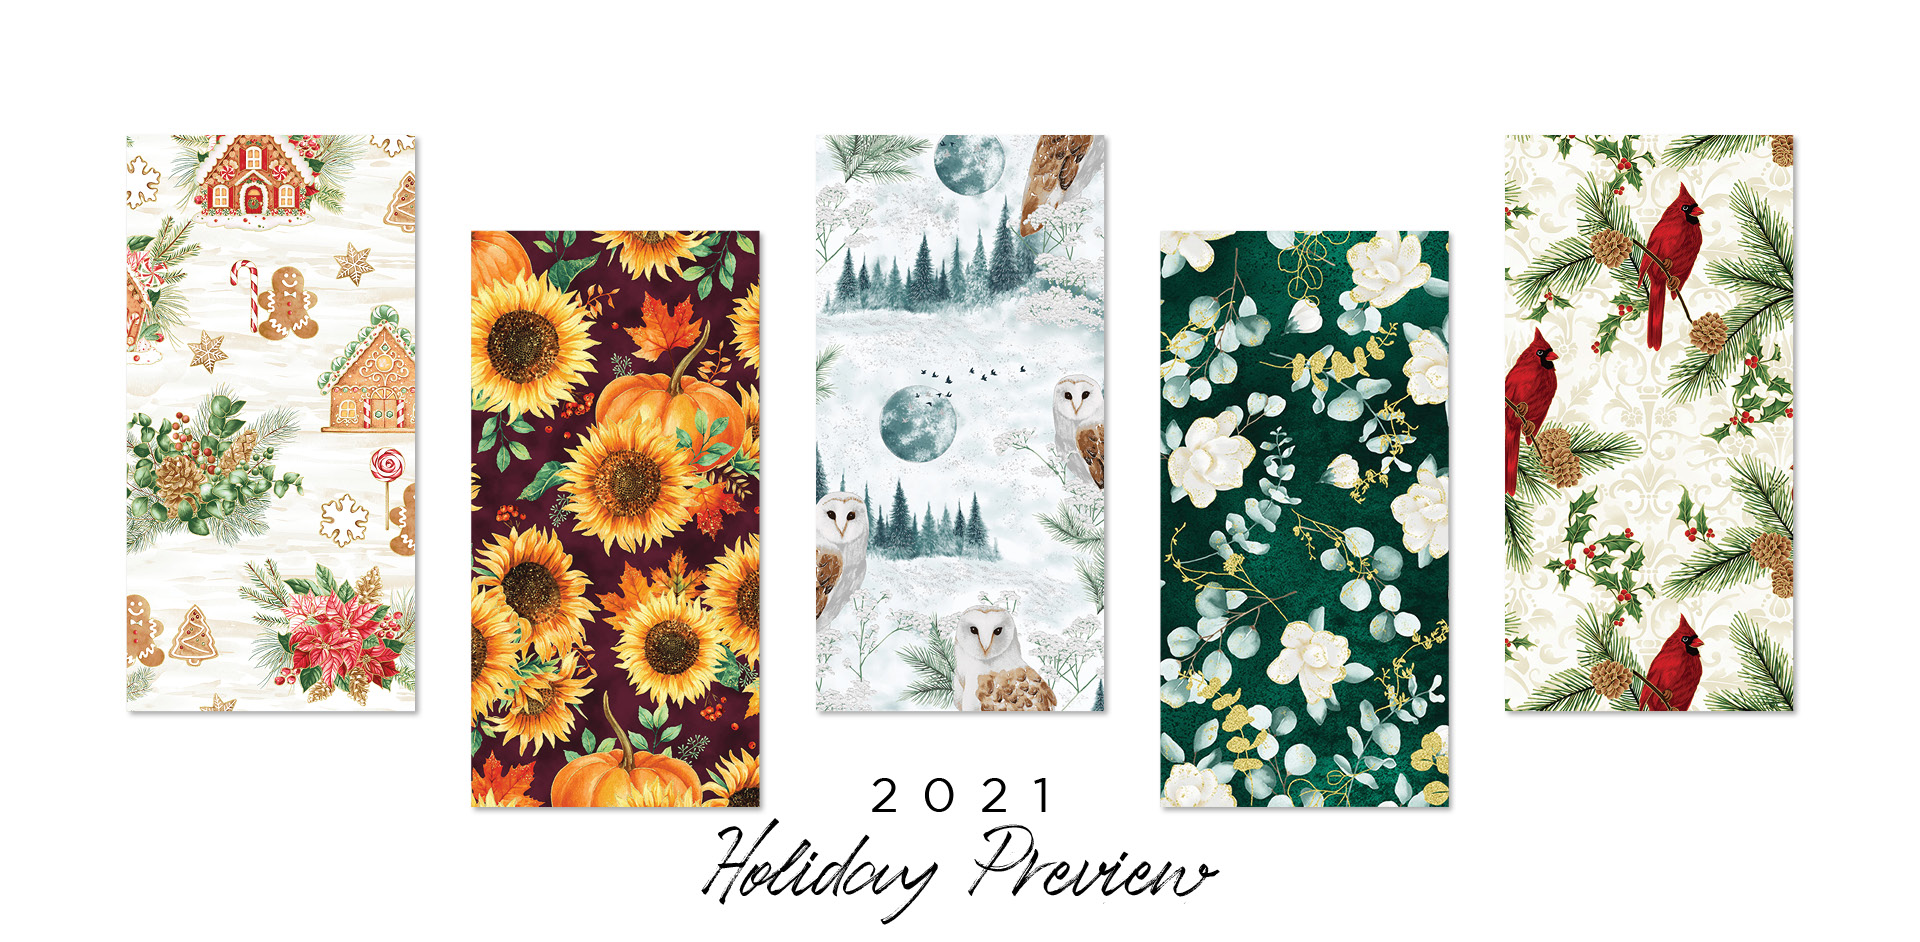 02-holiday preview